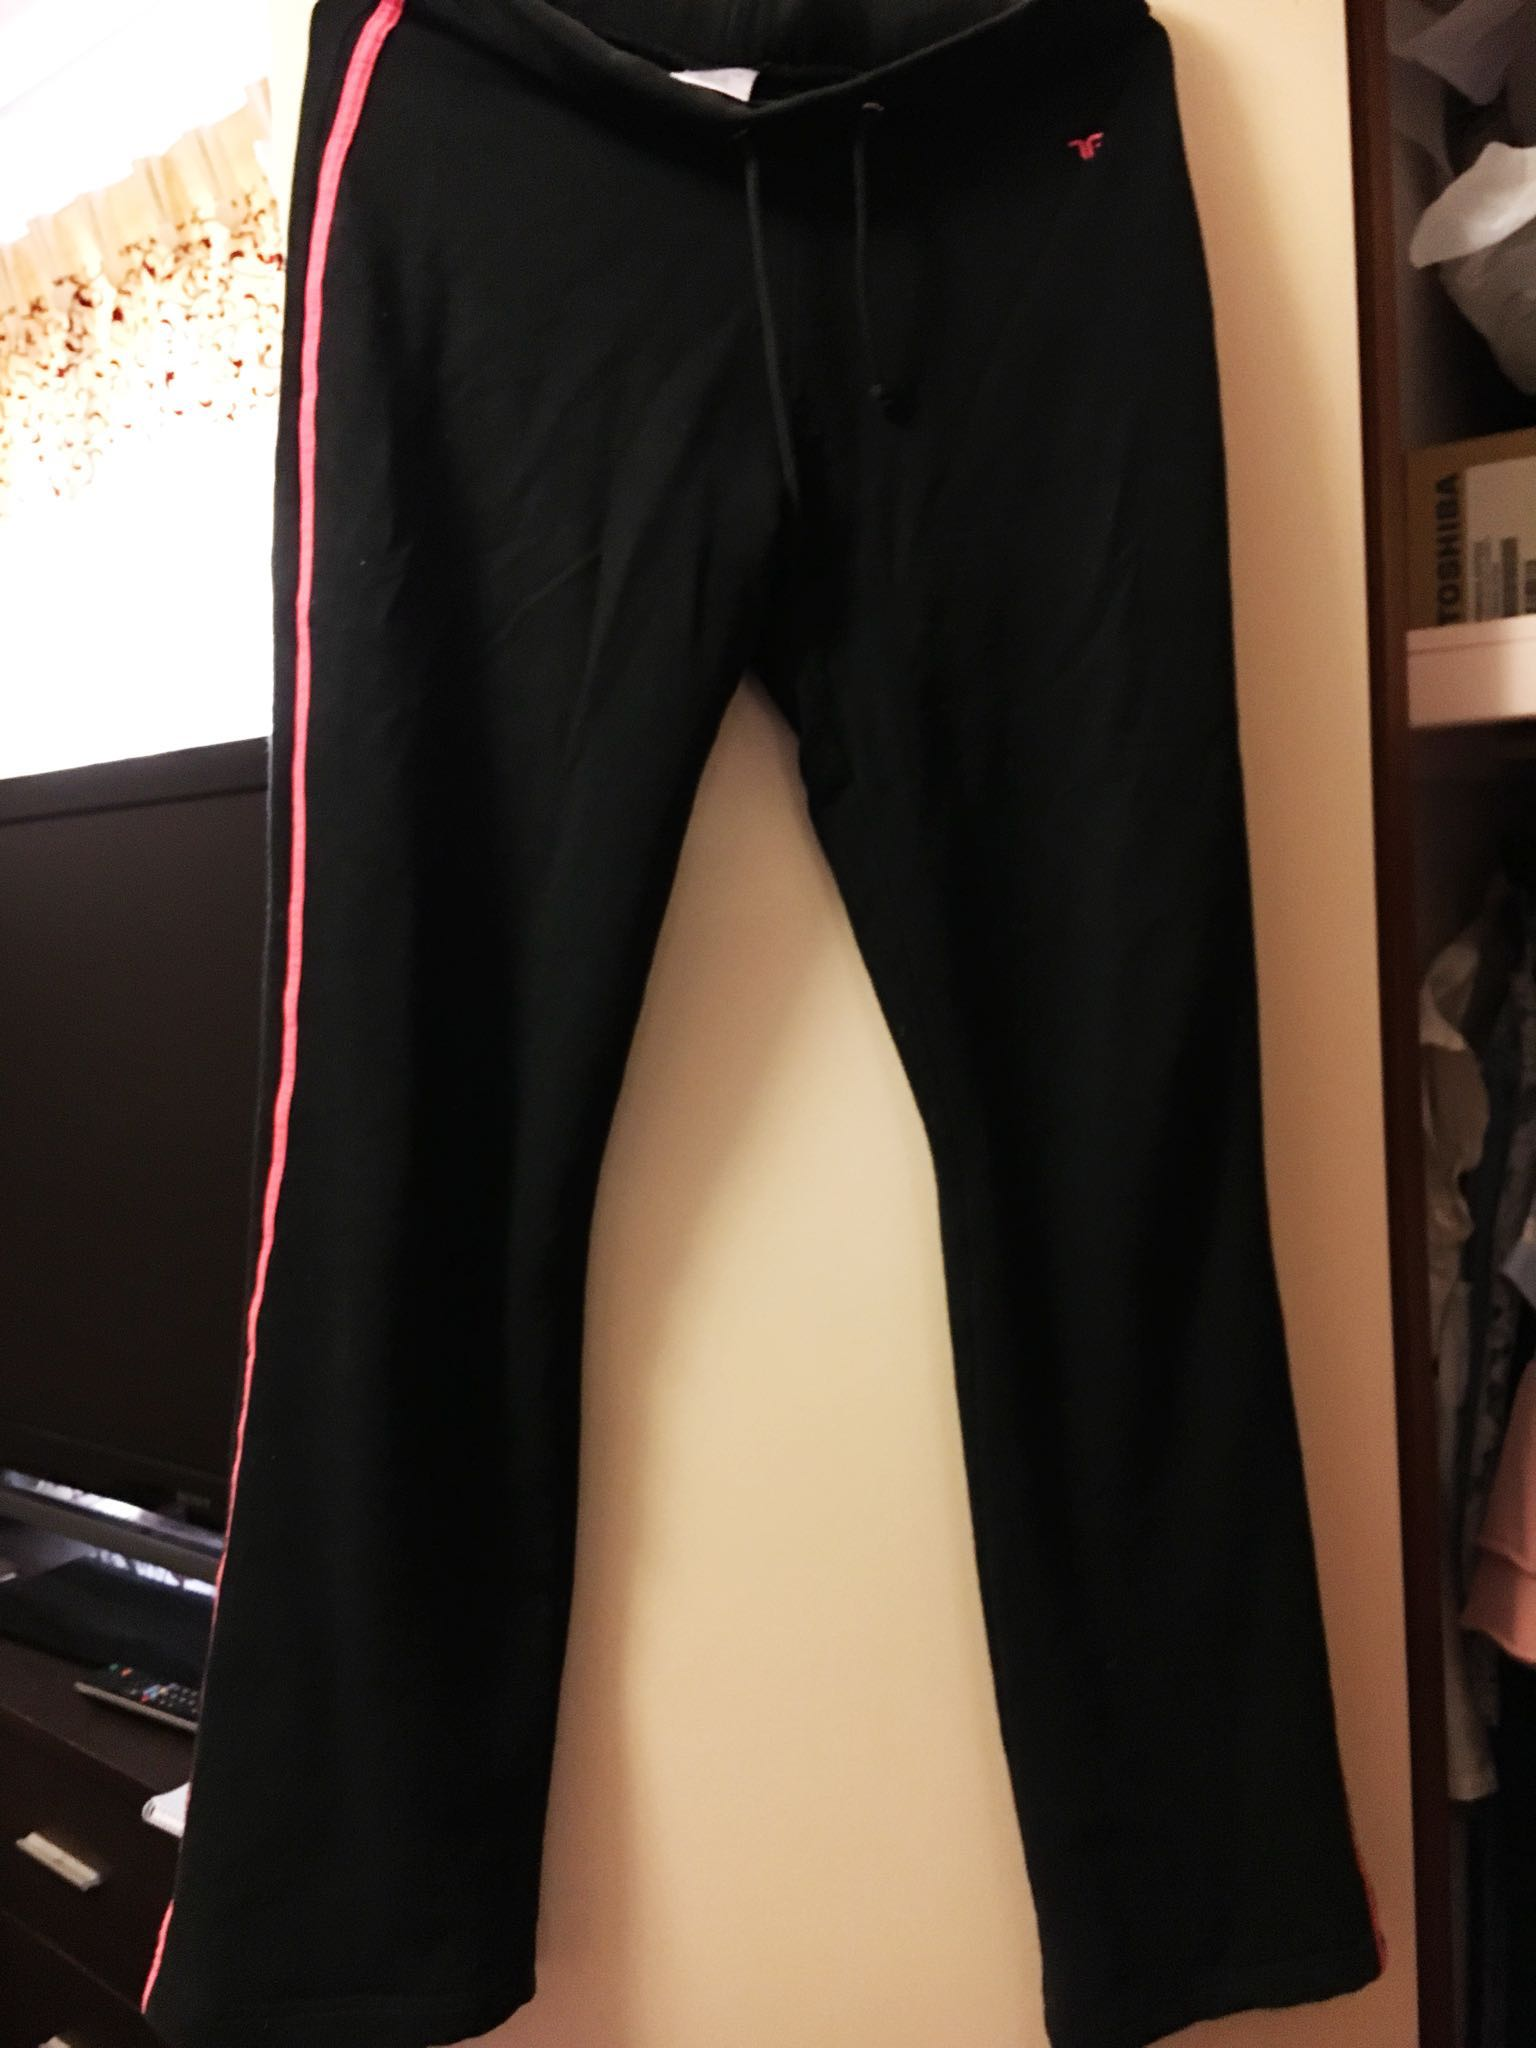 Track and field sports/ tracking pant